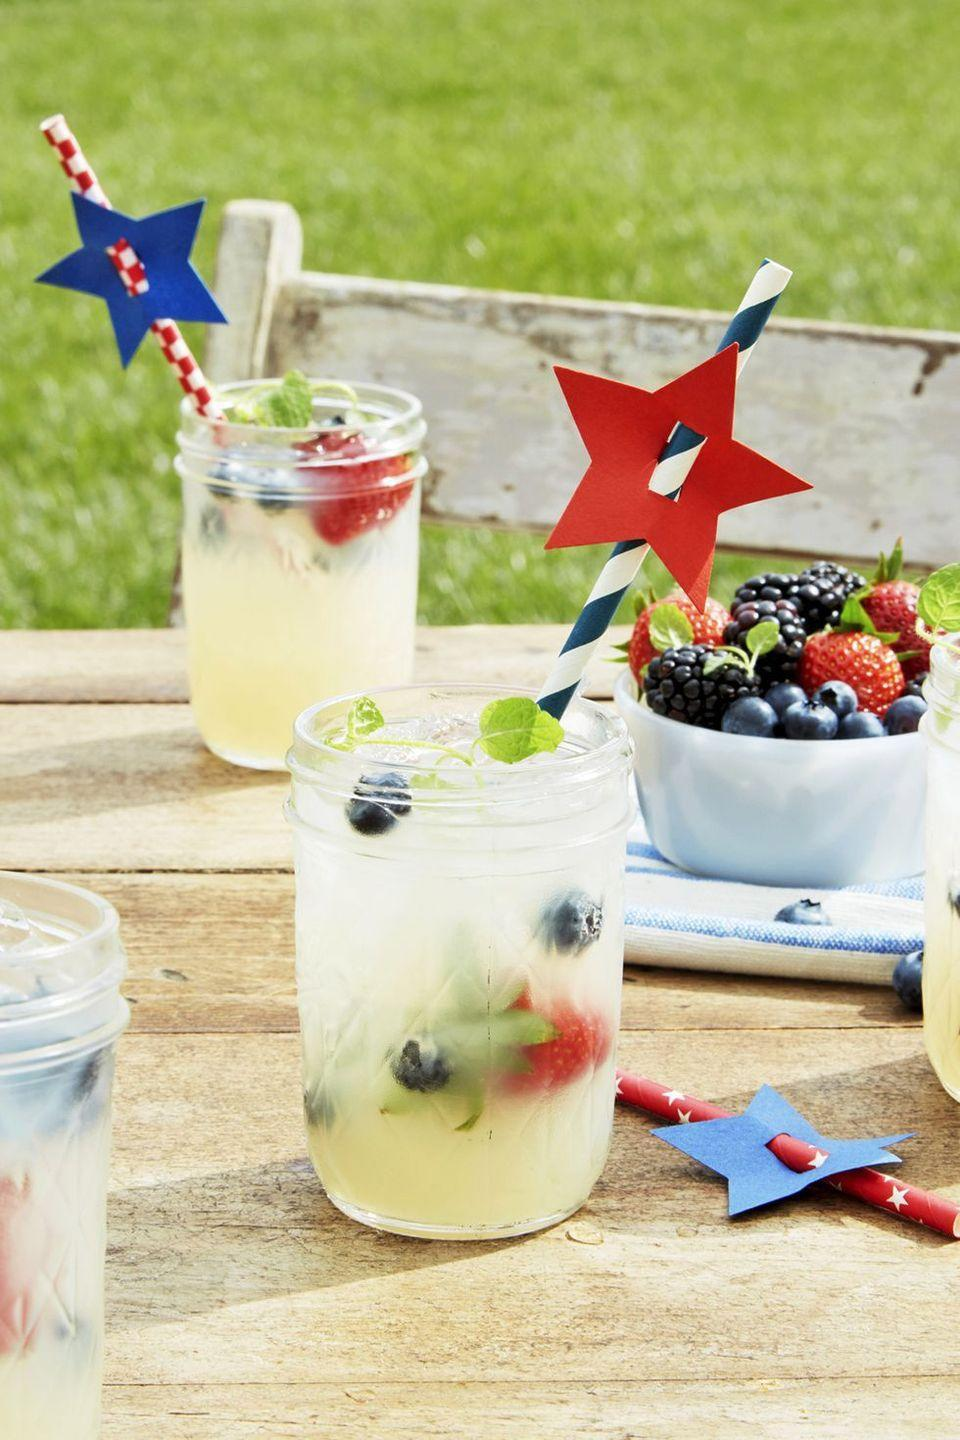 "<p>No al fresco party is complete without a tall glass of lemonade. Here, Mason jars and fresh berries add to the charm. </p><p><strong><a href=""https://www.countryliving.com/food-drinks/a21348860/old-fashioned-lemonade-recipe/"" rel=""nofollow noopener"" target=""_blank"" data-ylk=""slk:Get the recipe"" class=""link rapid-noclick-resp"">Get the recipe</a>.</strong></p><p><a class=""link rapid-noclick-resp"" href=""https://www.amazon.com/Tosnail-Mason-Handle-Plastic-Straws/dp/B07CTGPC7M?tag=syn-yahoo-20&ascsubtag=%5Bartid%7C10050.g.3663%5Bsrc%7Cyahoo-us"" rel=""nofollow noopener"" target=""_blank"" data-ylk=""slk:SHOP MASON JAR MUGS"">SHOP MASON JAR MUGS</a></p>"